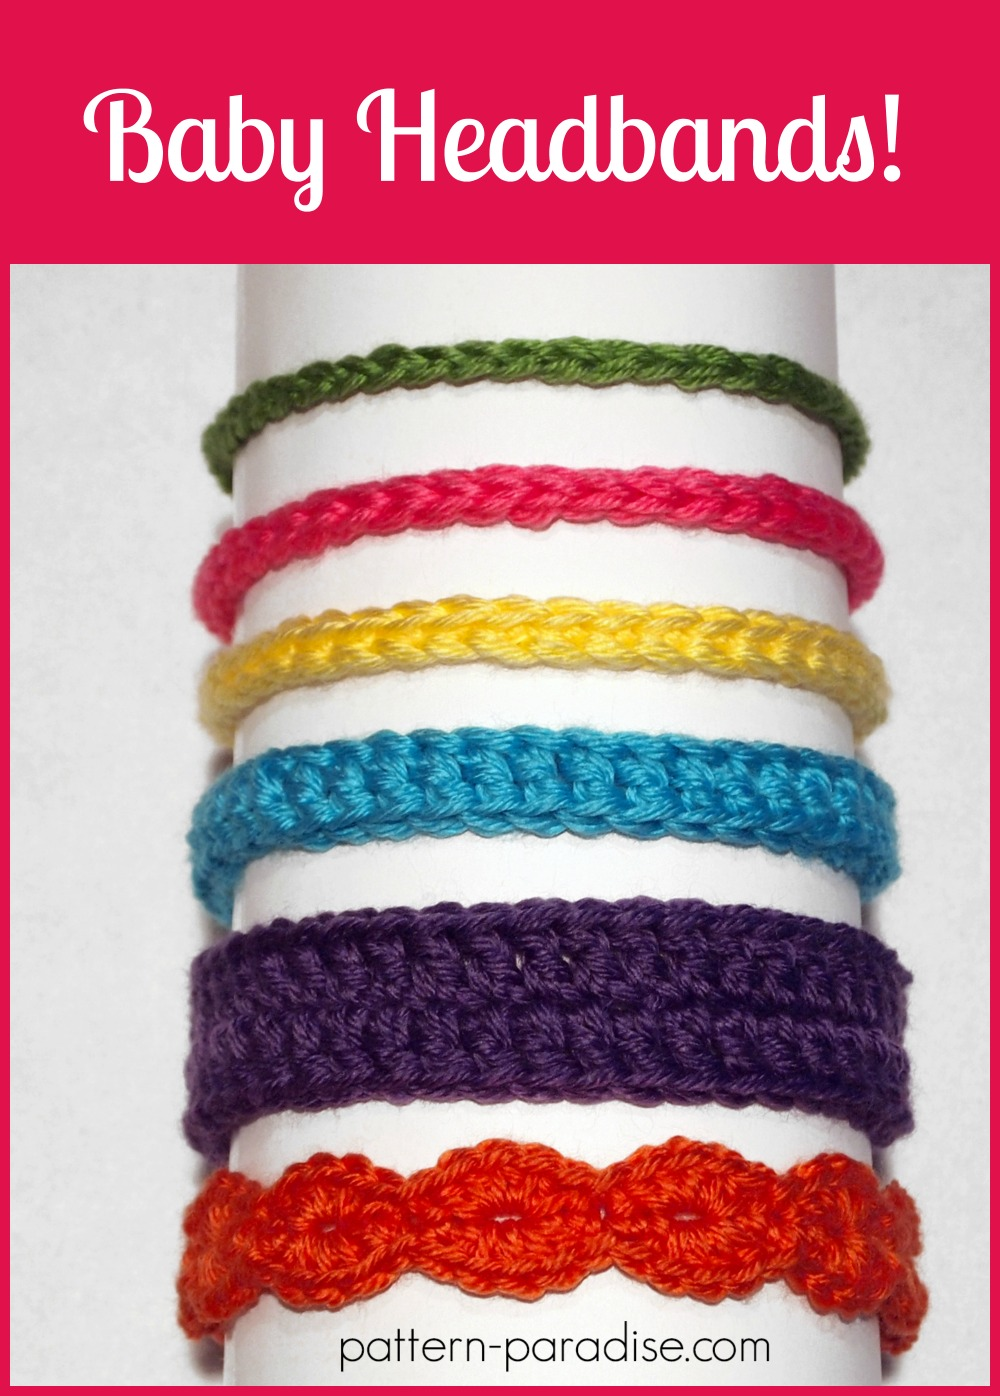 Free crochet pattern six styles of baby headbands pattern paradise free pattern crochet baby headbands by pattern paradise dt1010fo